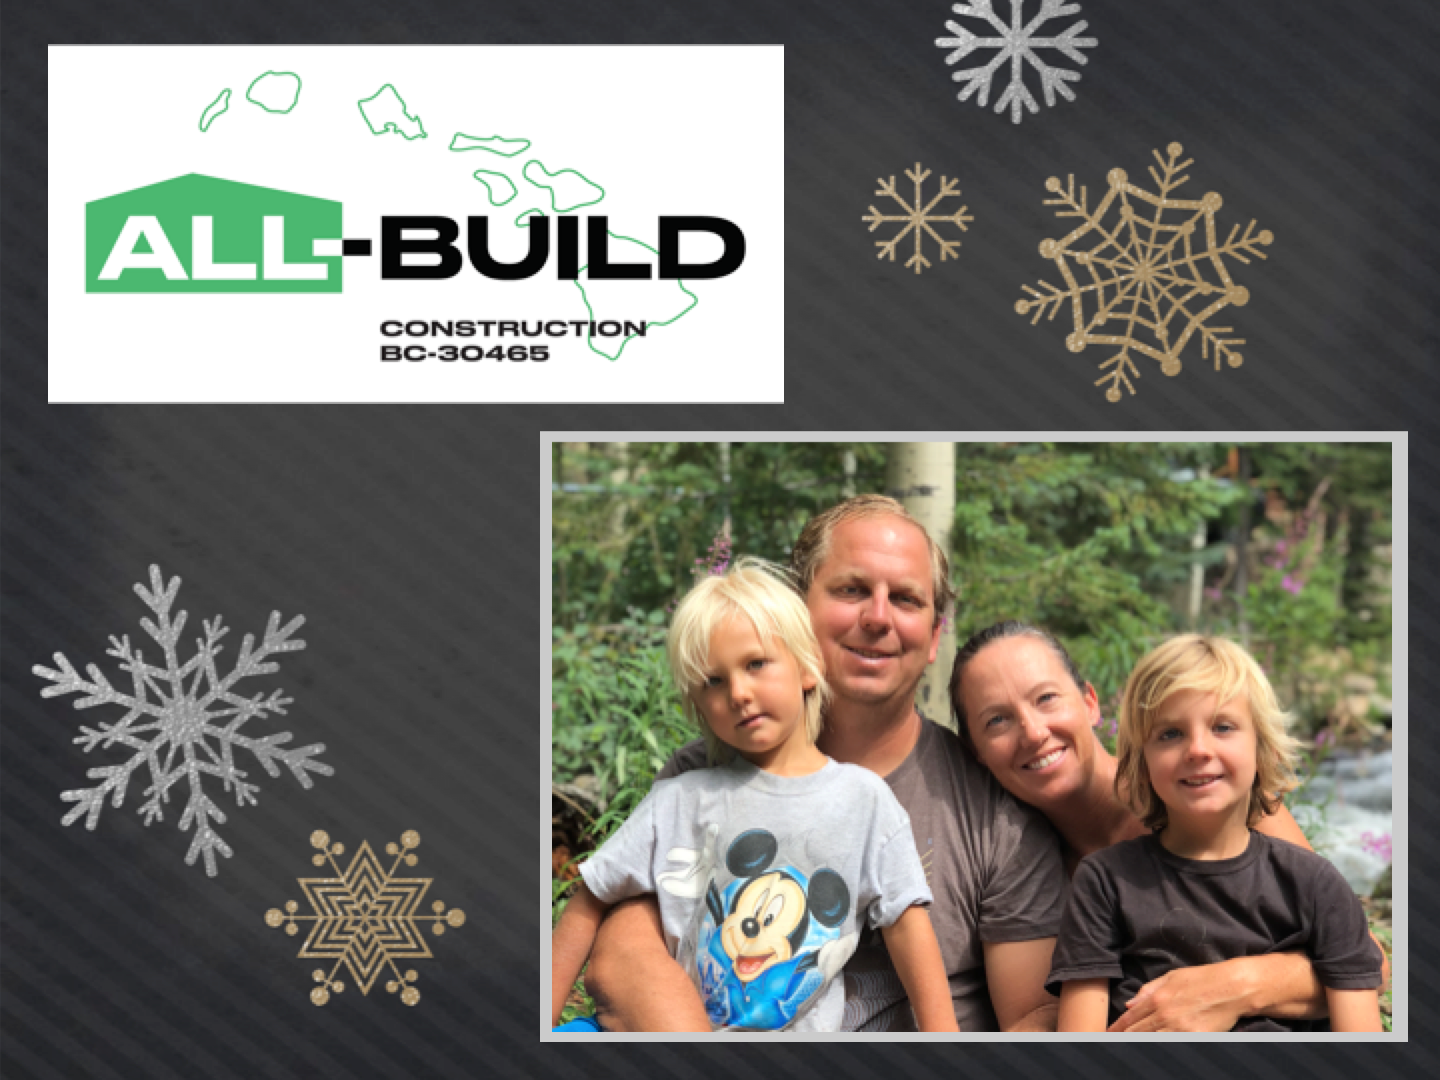 Wishing you and yours a joyful holiday season and a great start to the new year!     From The Sims Family, James, Jill, Parker & Grayson